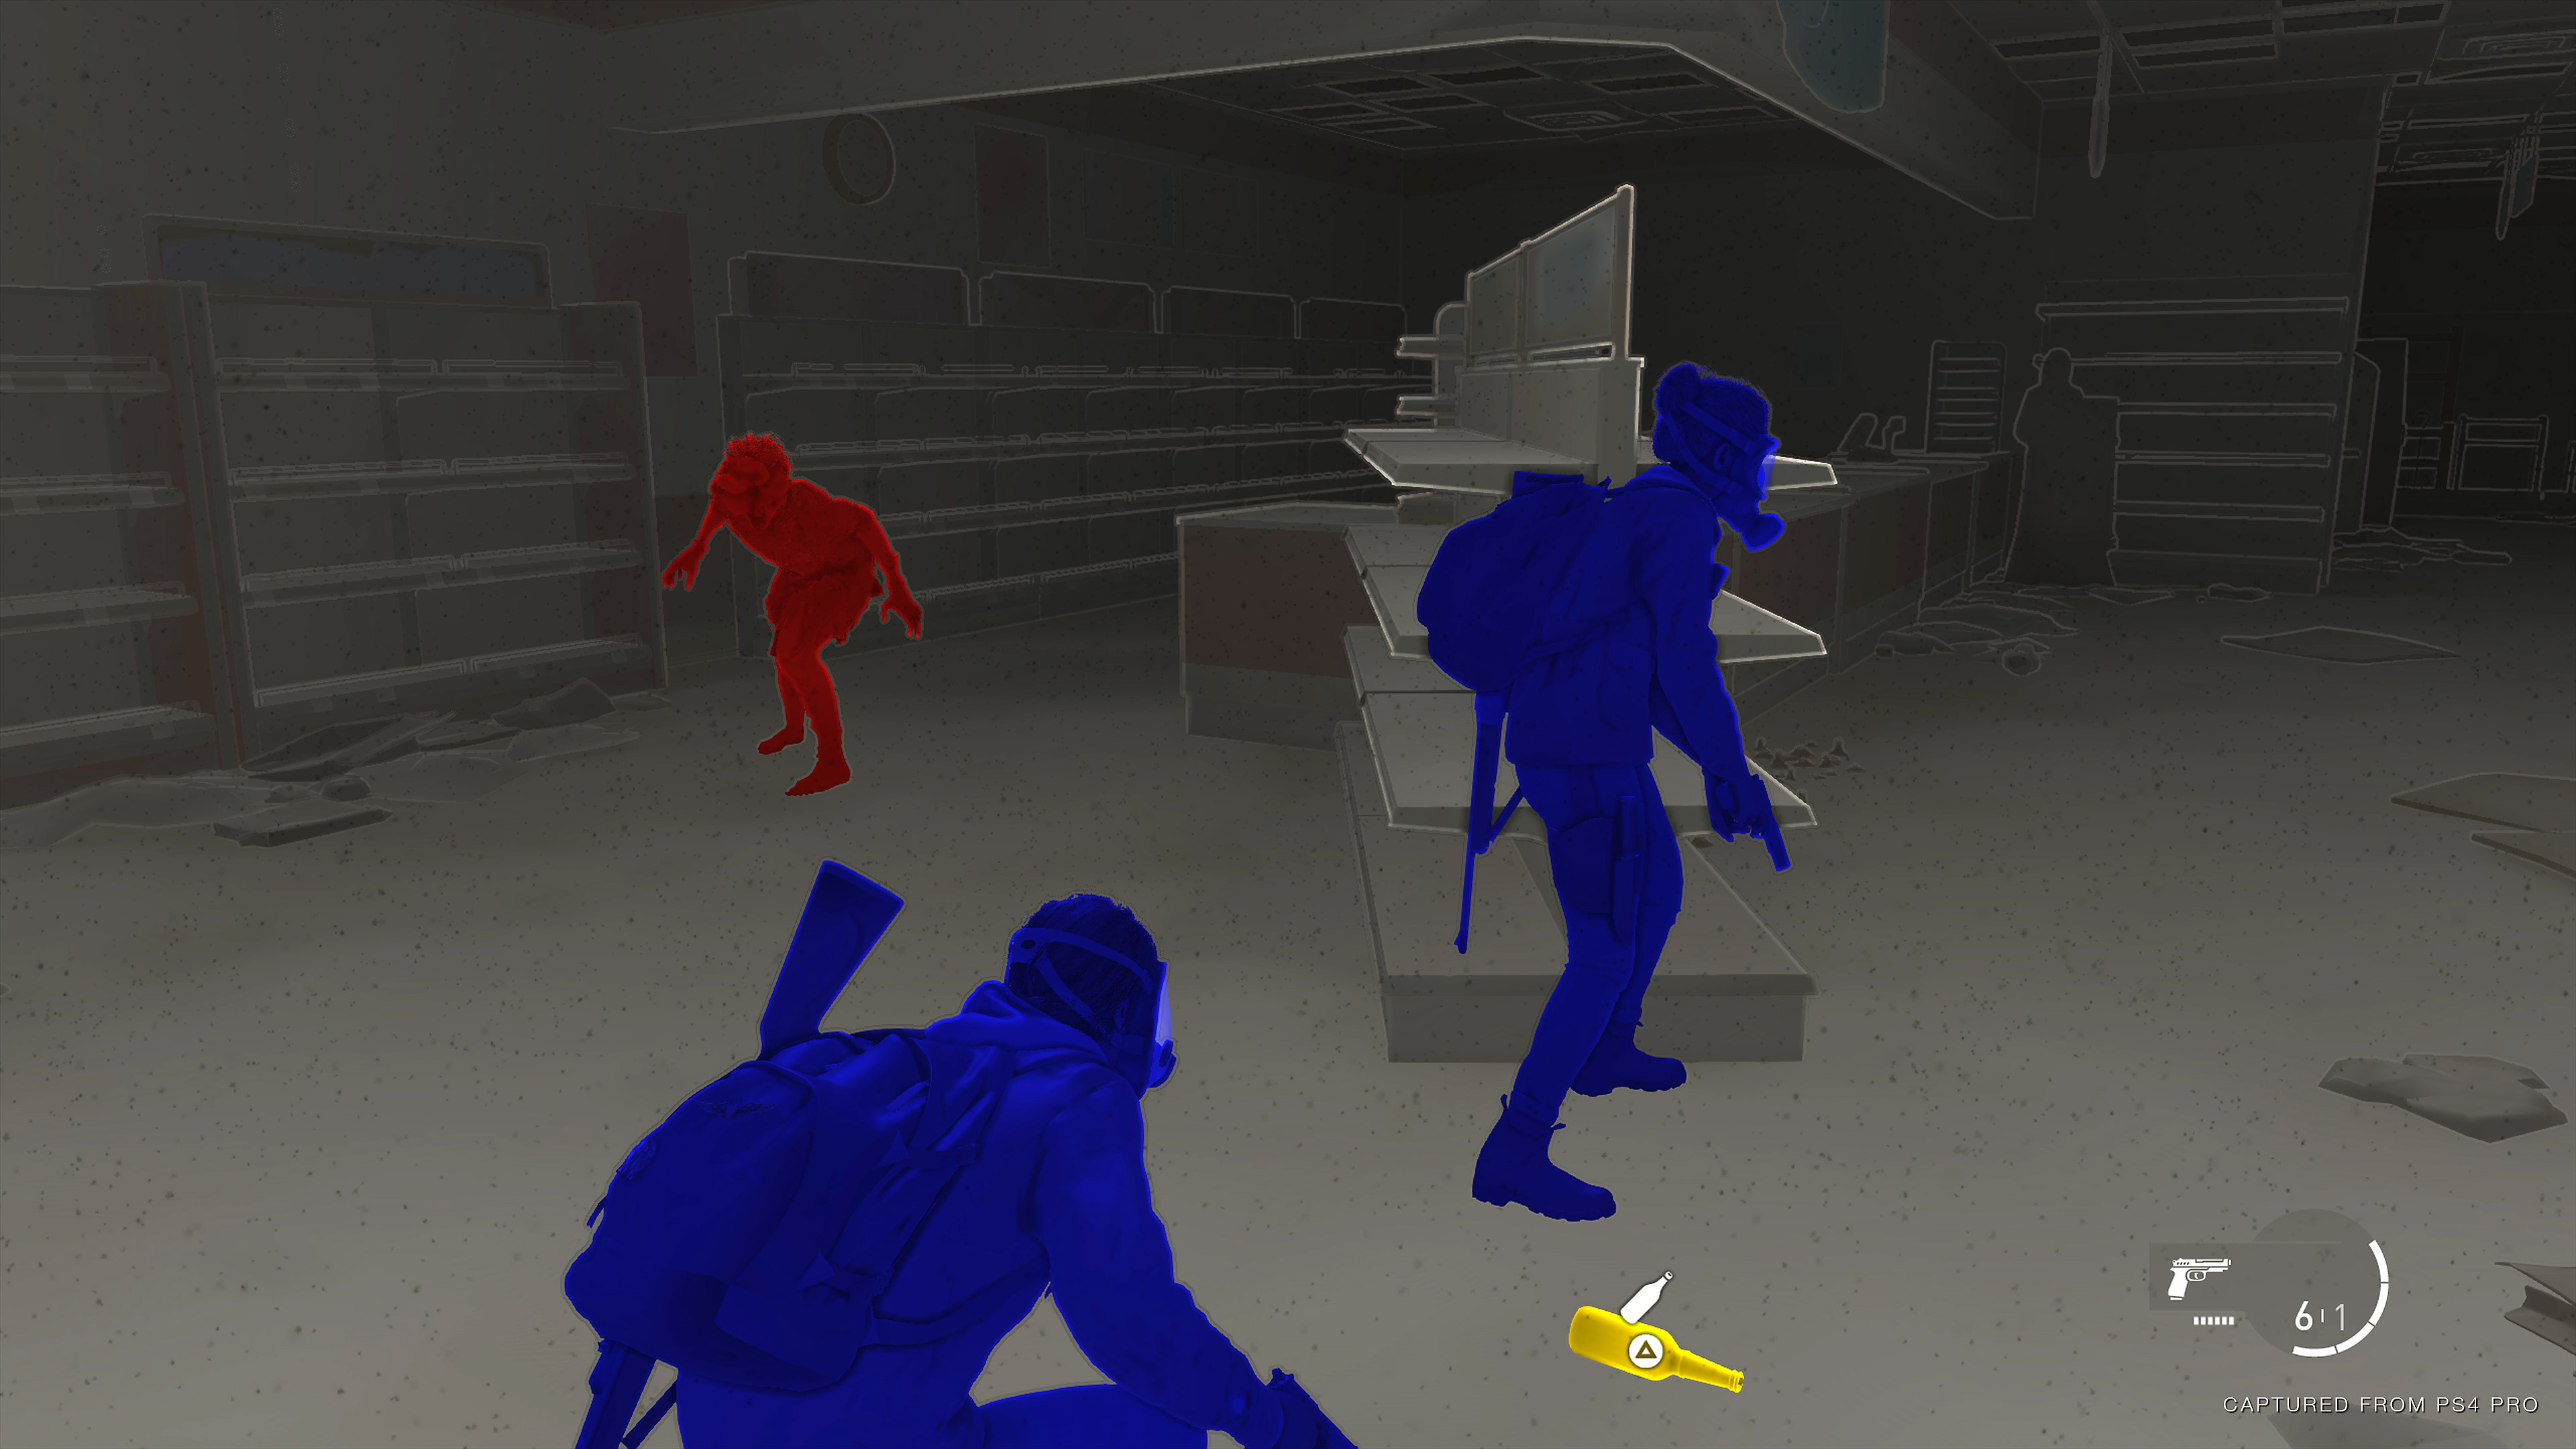 High contrast mode showing friends enemies and items in bright highly contrasting colours, against a muted background